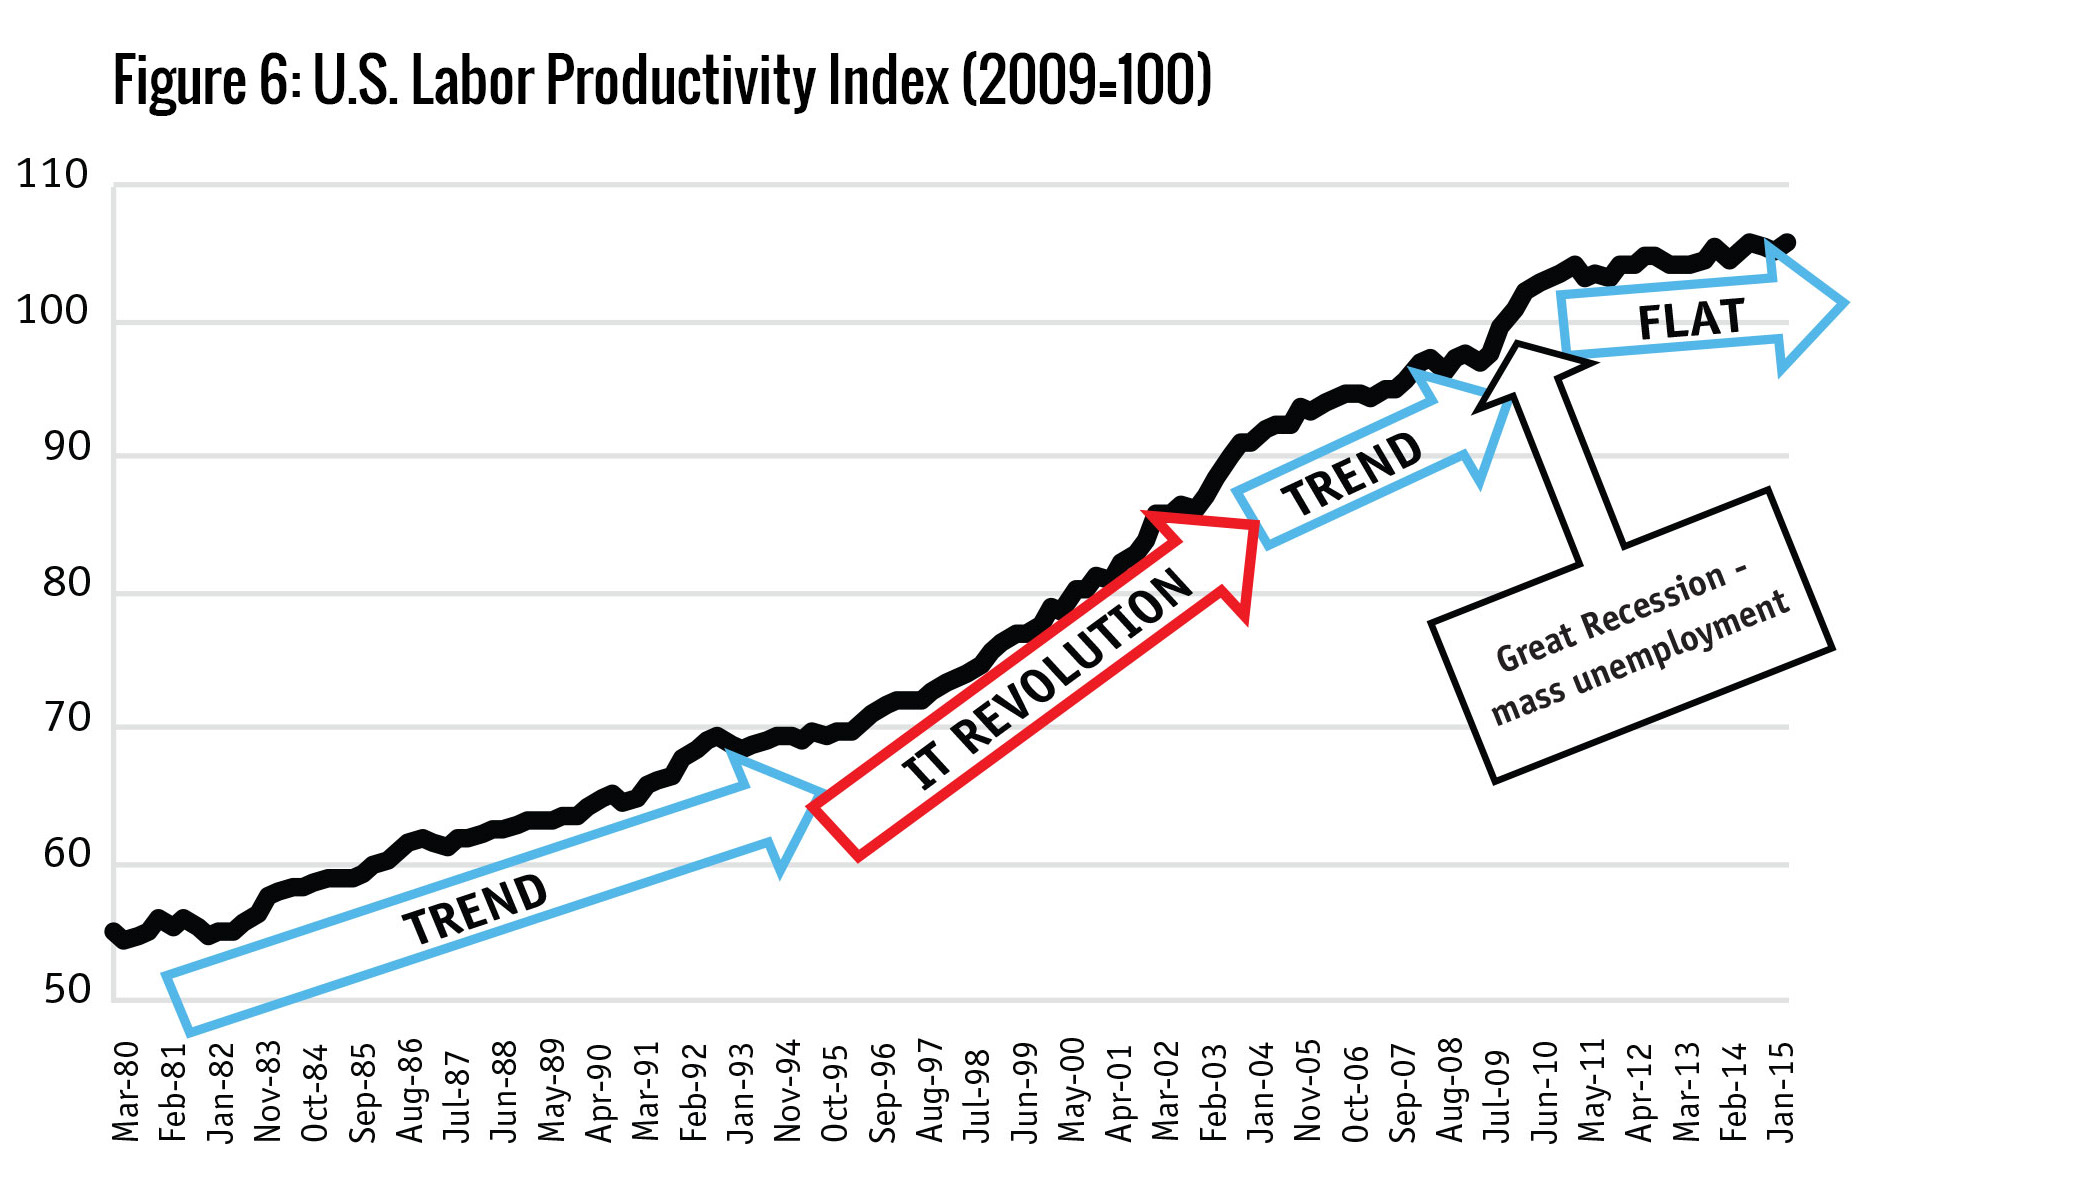 Figure 6: U.S. Labor Productivity Index